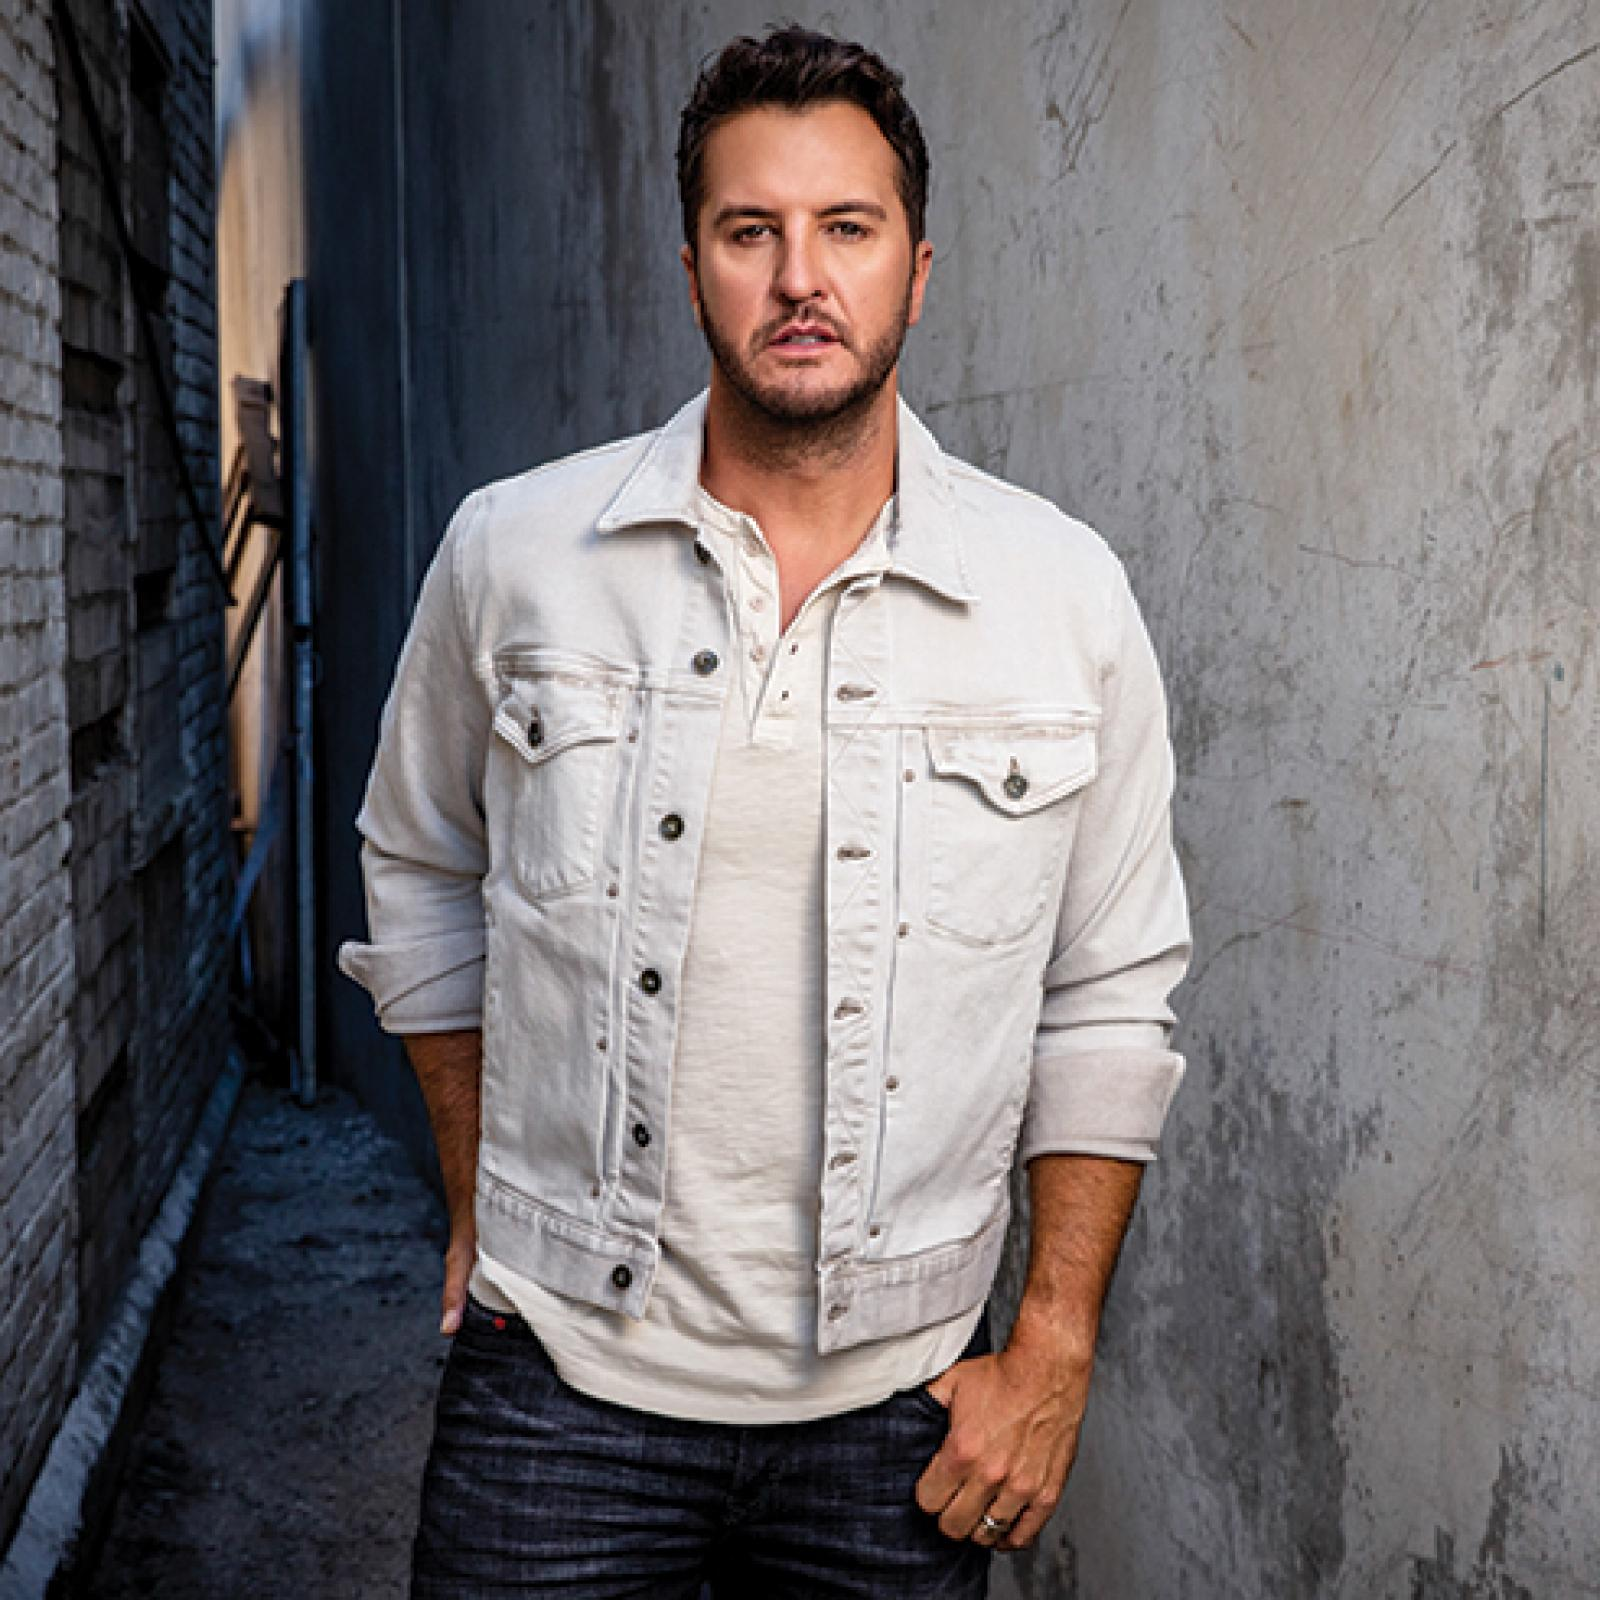 Country Aircheck Names Luke Bryan Most-Heard Artist of the Decade